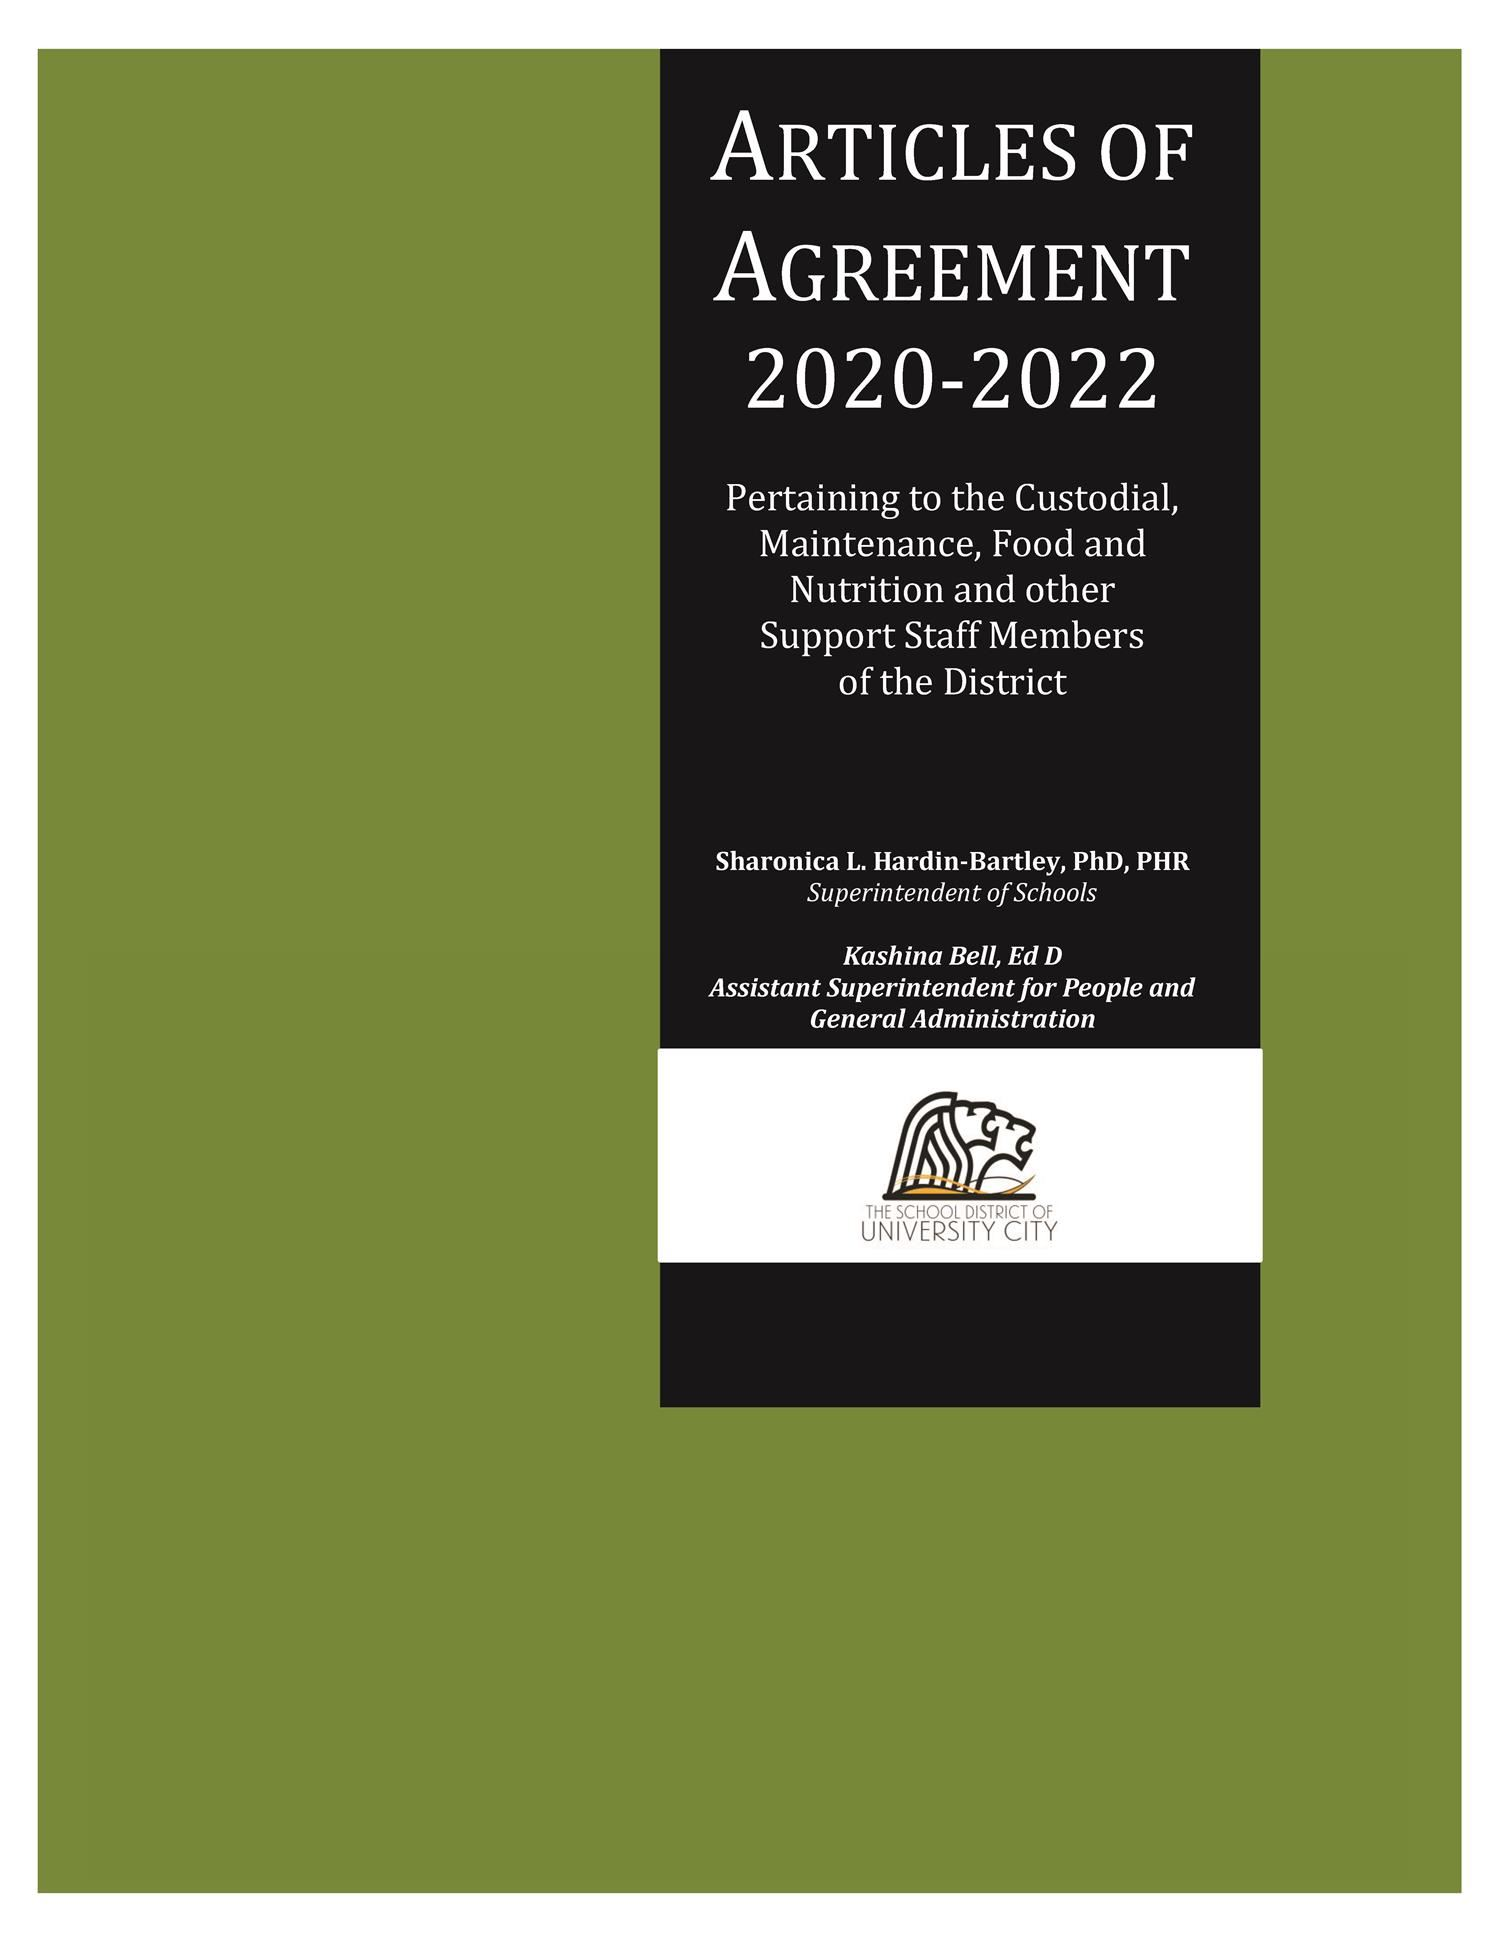 Cover 20-22 from Support Staff Articles of Agreement-Green Book